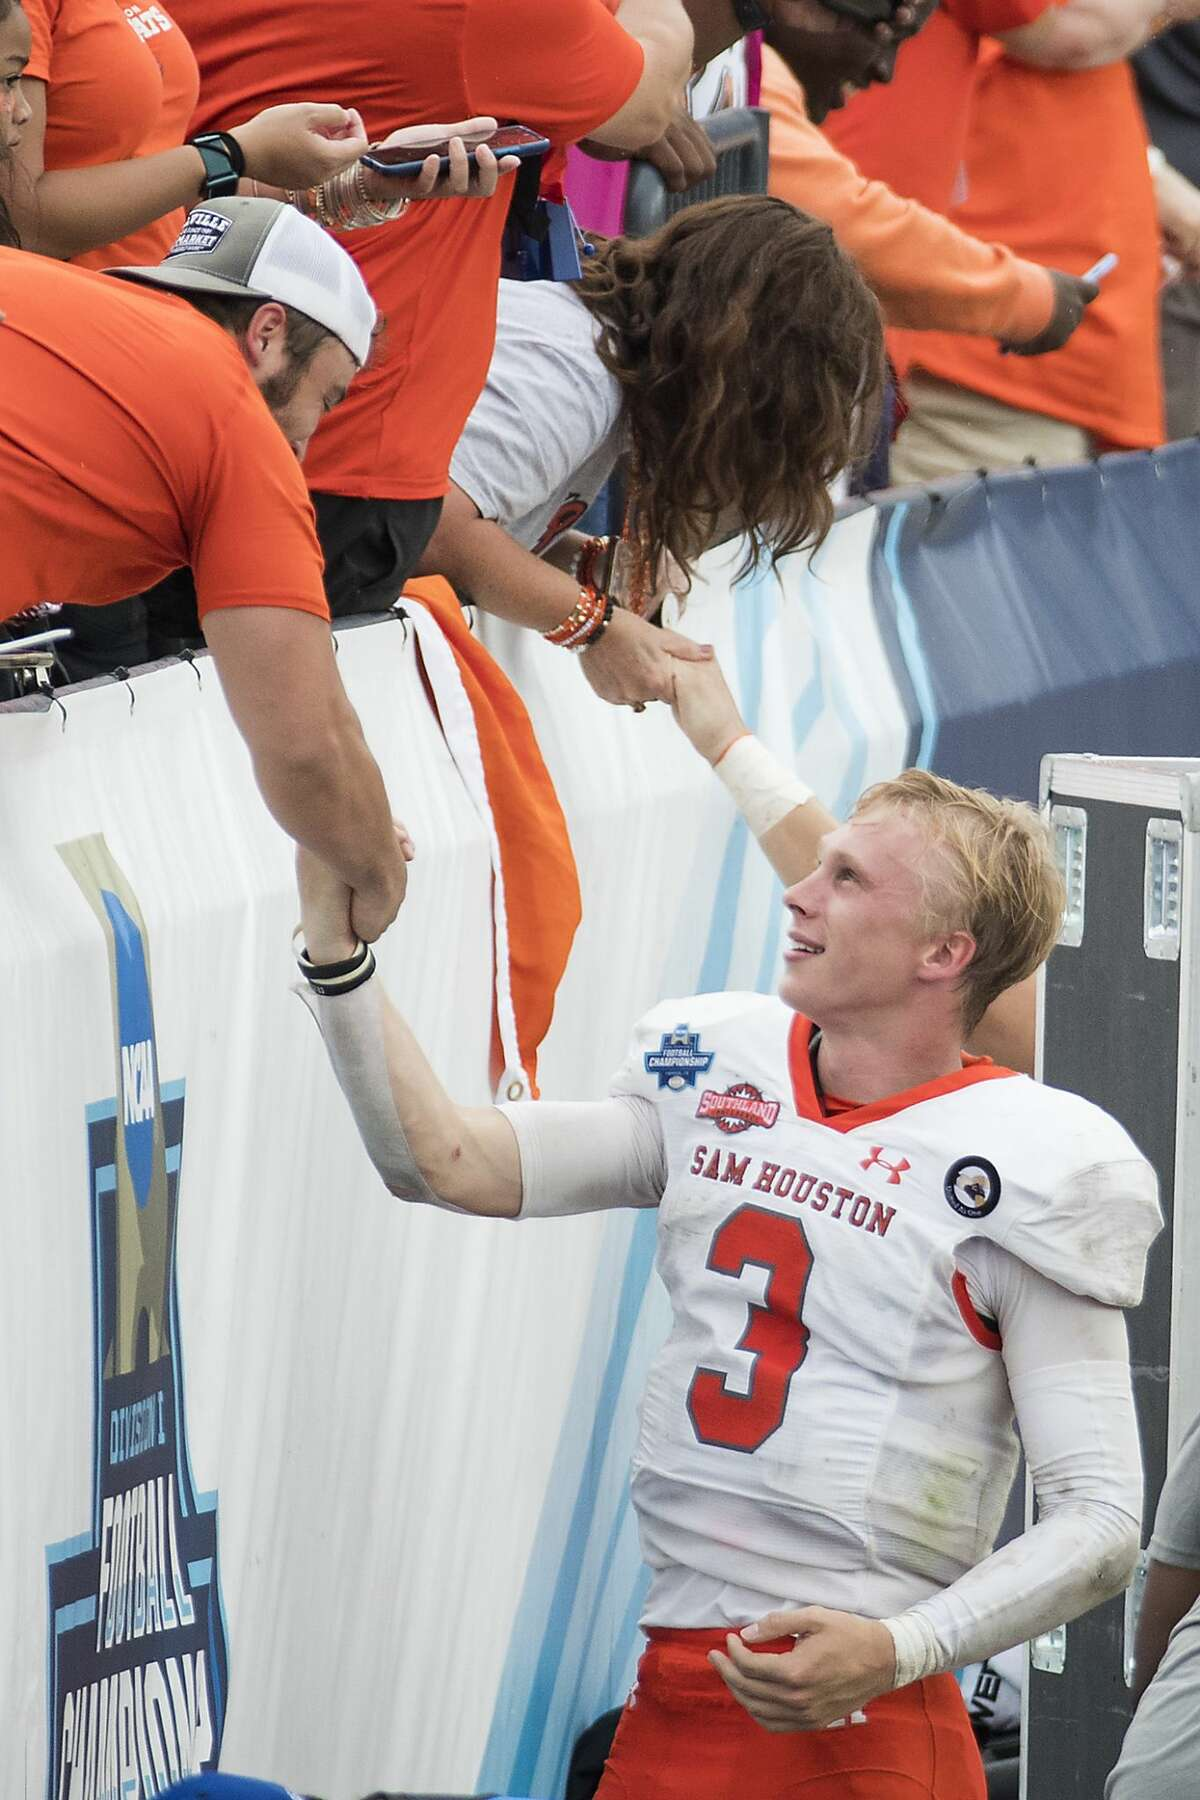 Sam Houston State quarterback Eric Schmid (3) shakes hands with fans as he celebrates the Bearkats 23-21 win over South Dakota State in the NCAA FCS national football championship game on Sunday, May 16, 2021, in Frisco.